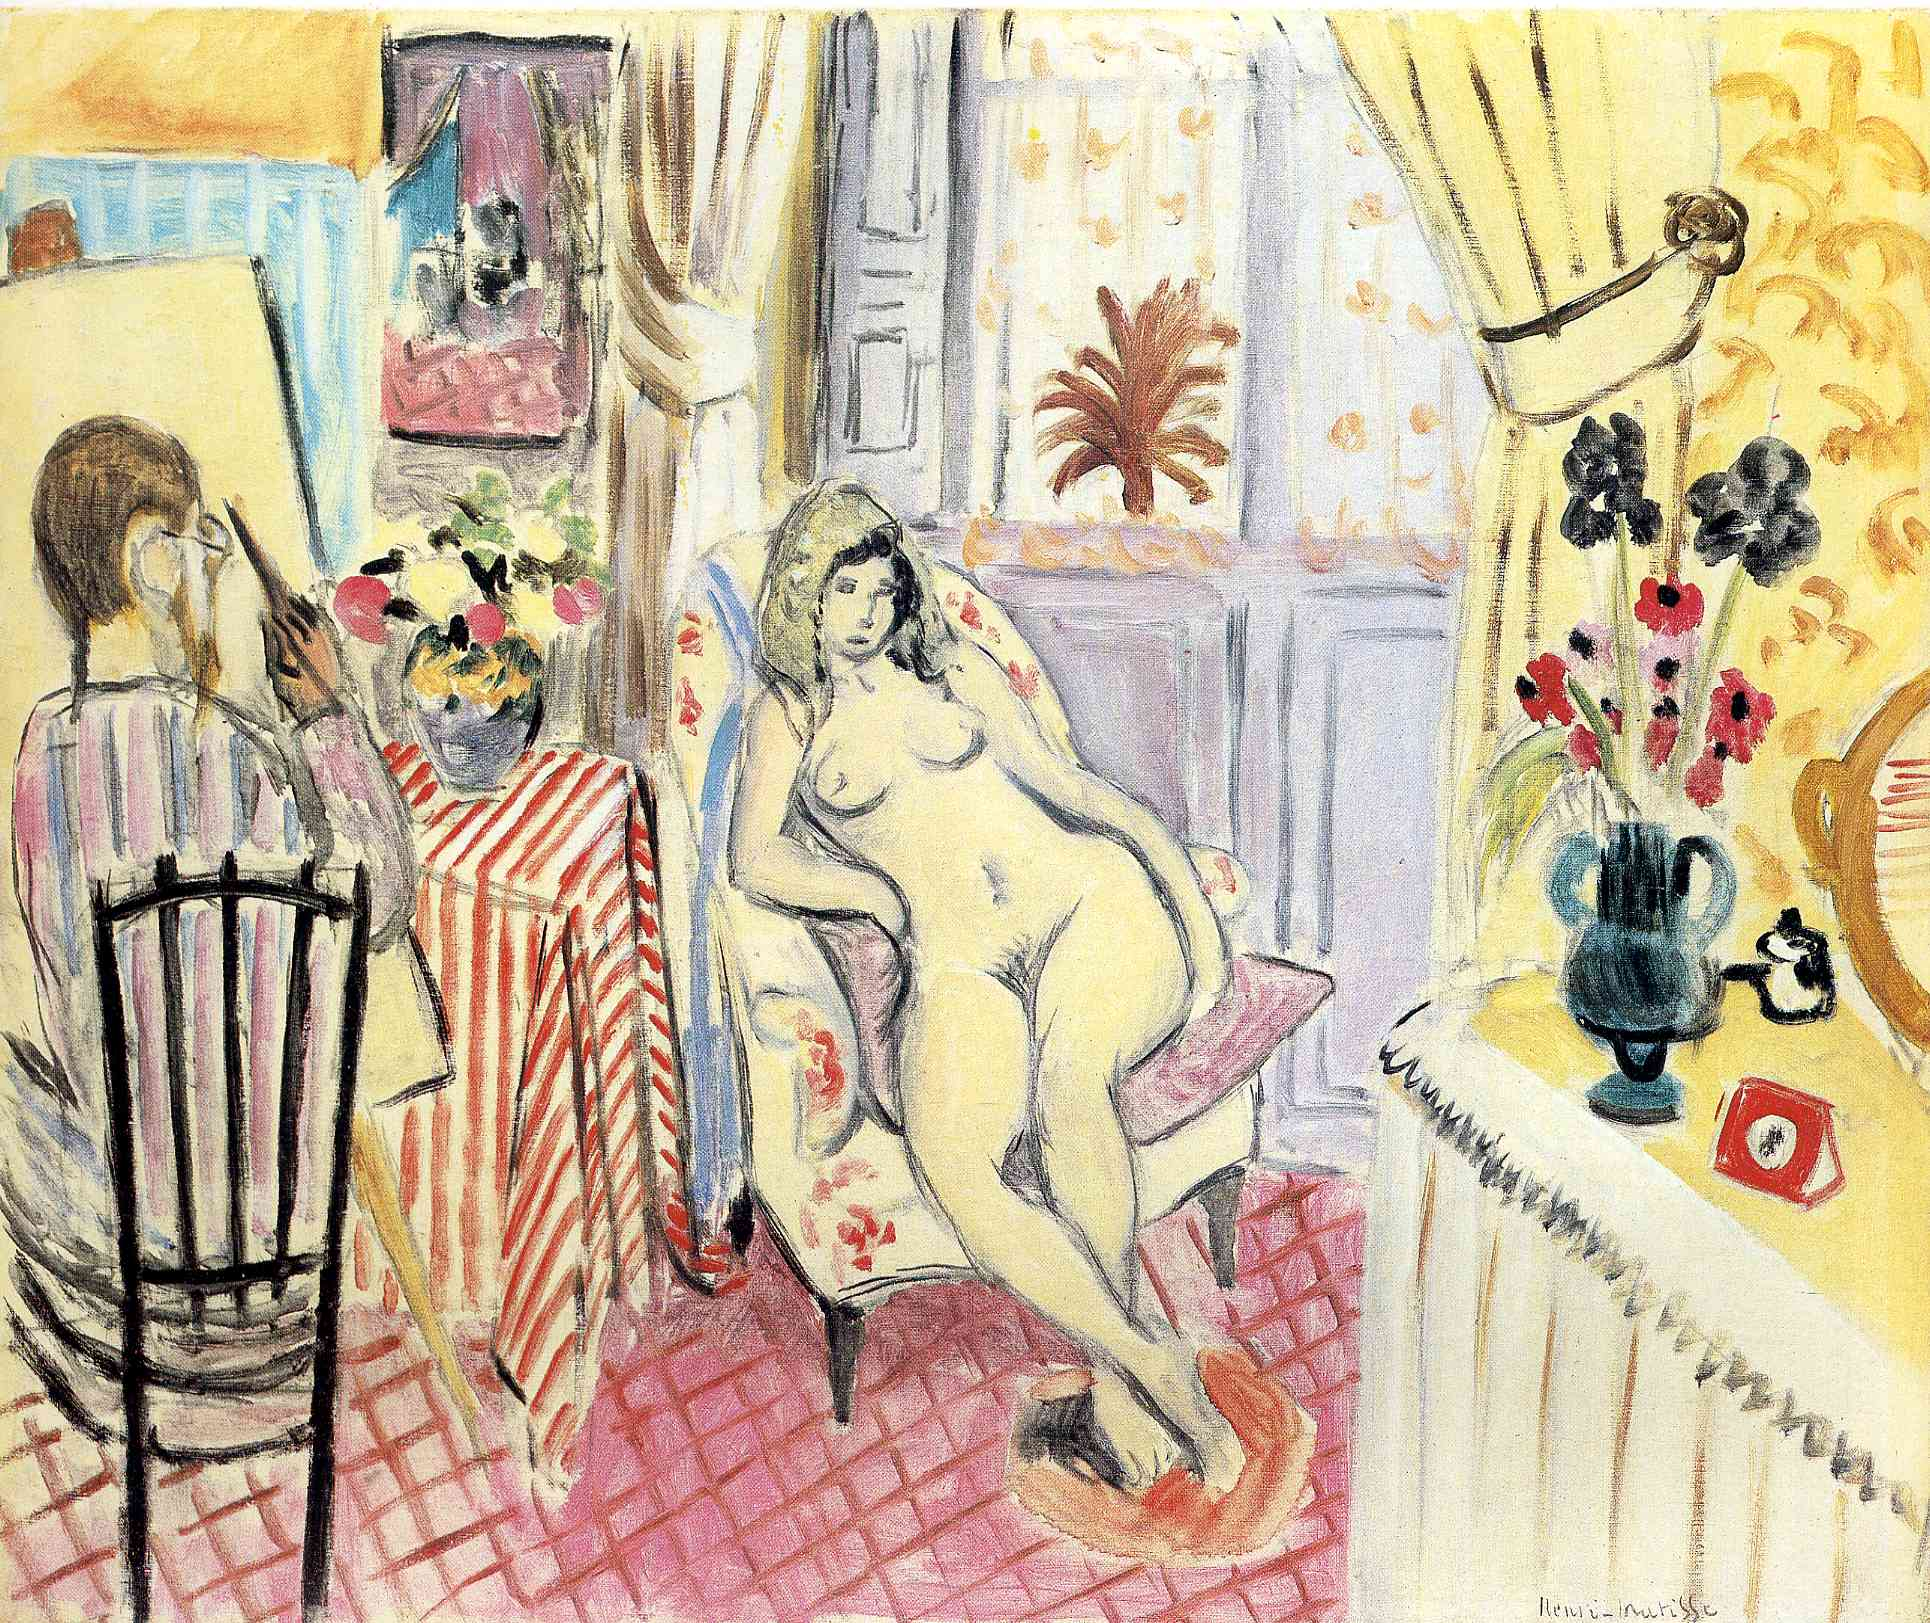 Henri Matisse - The Artist and his model 1919